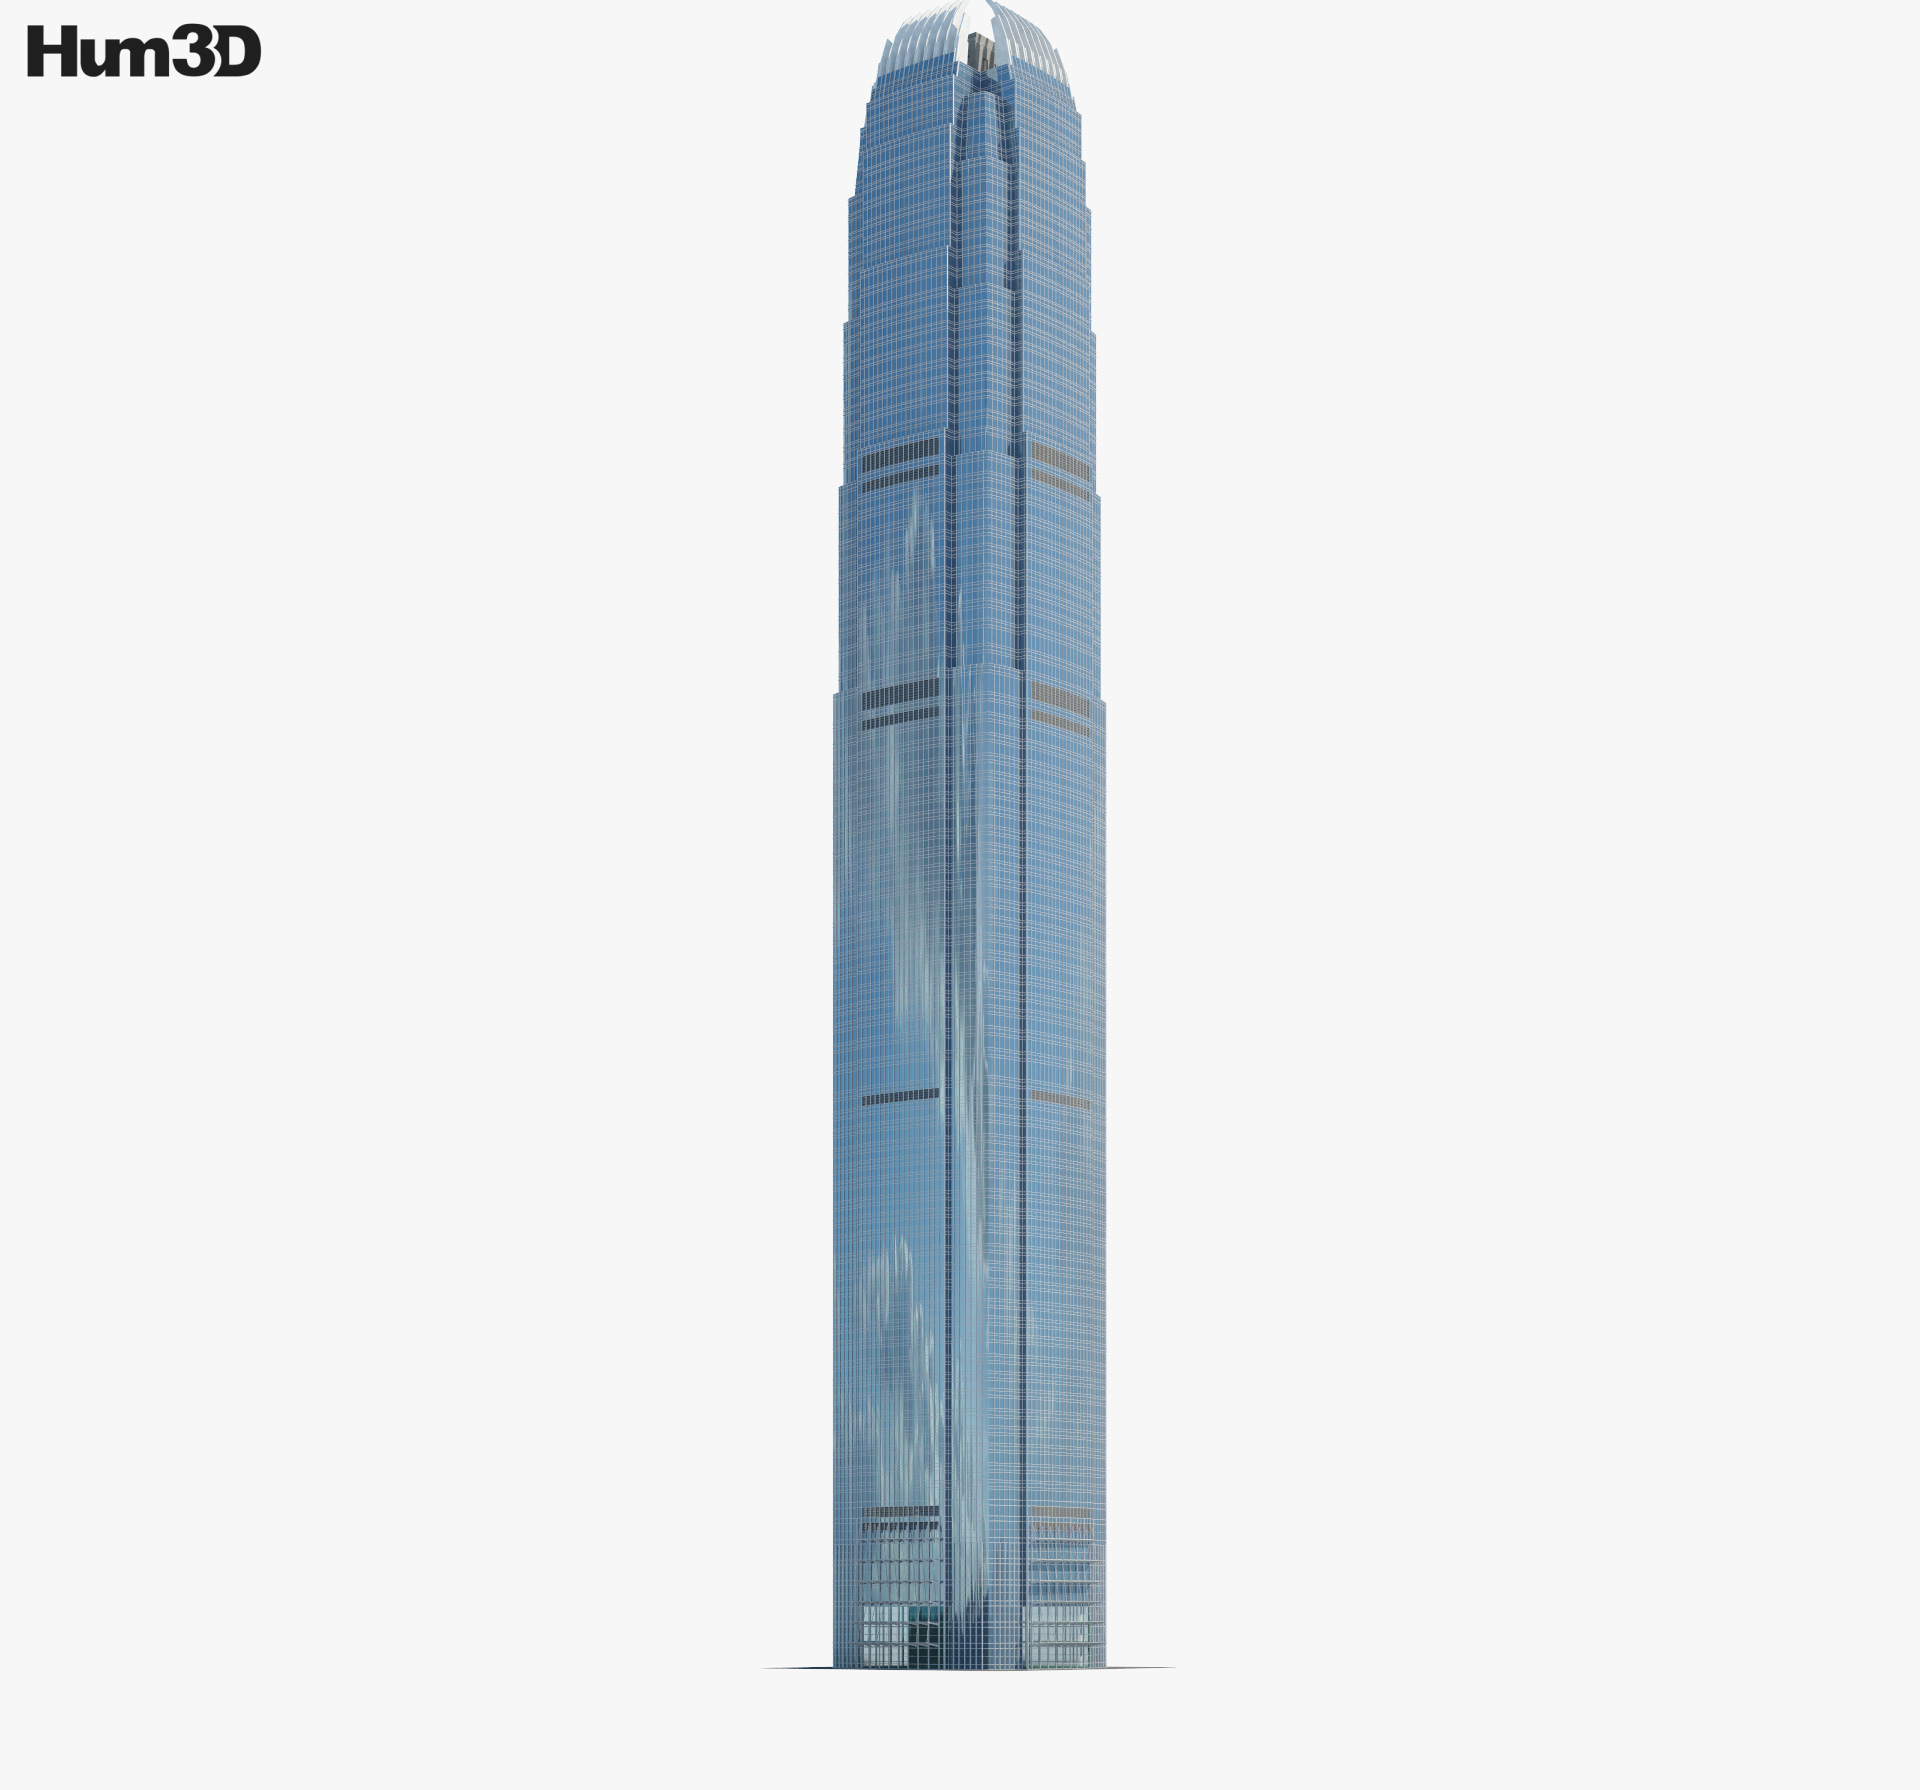 3D model of International Finance Centre